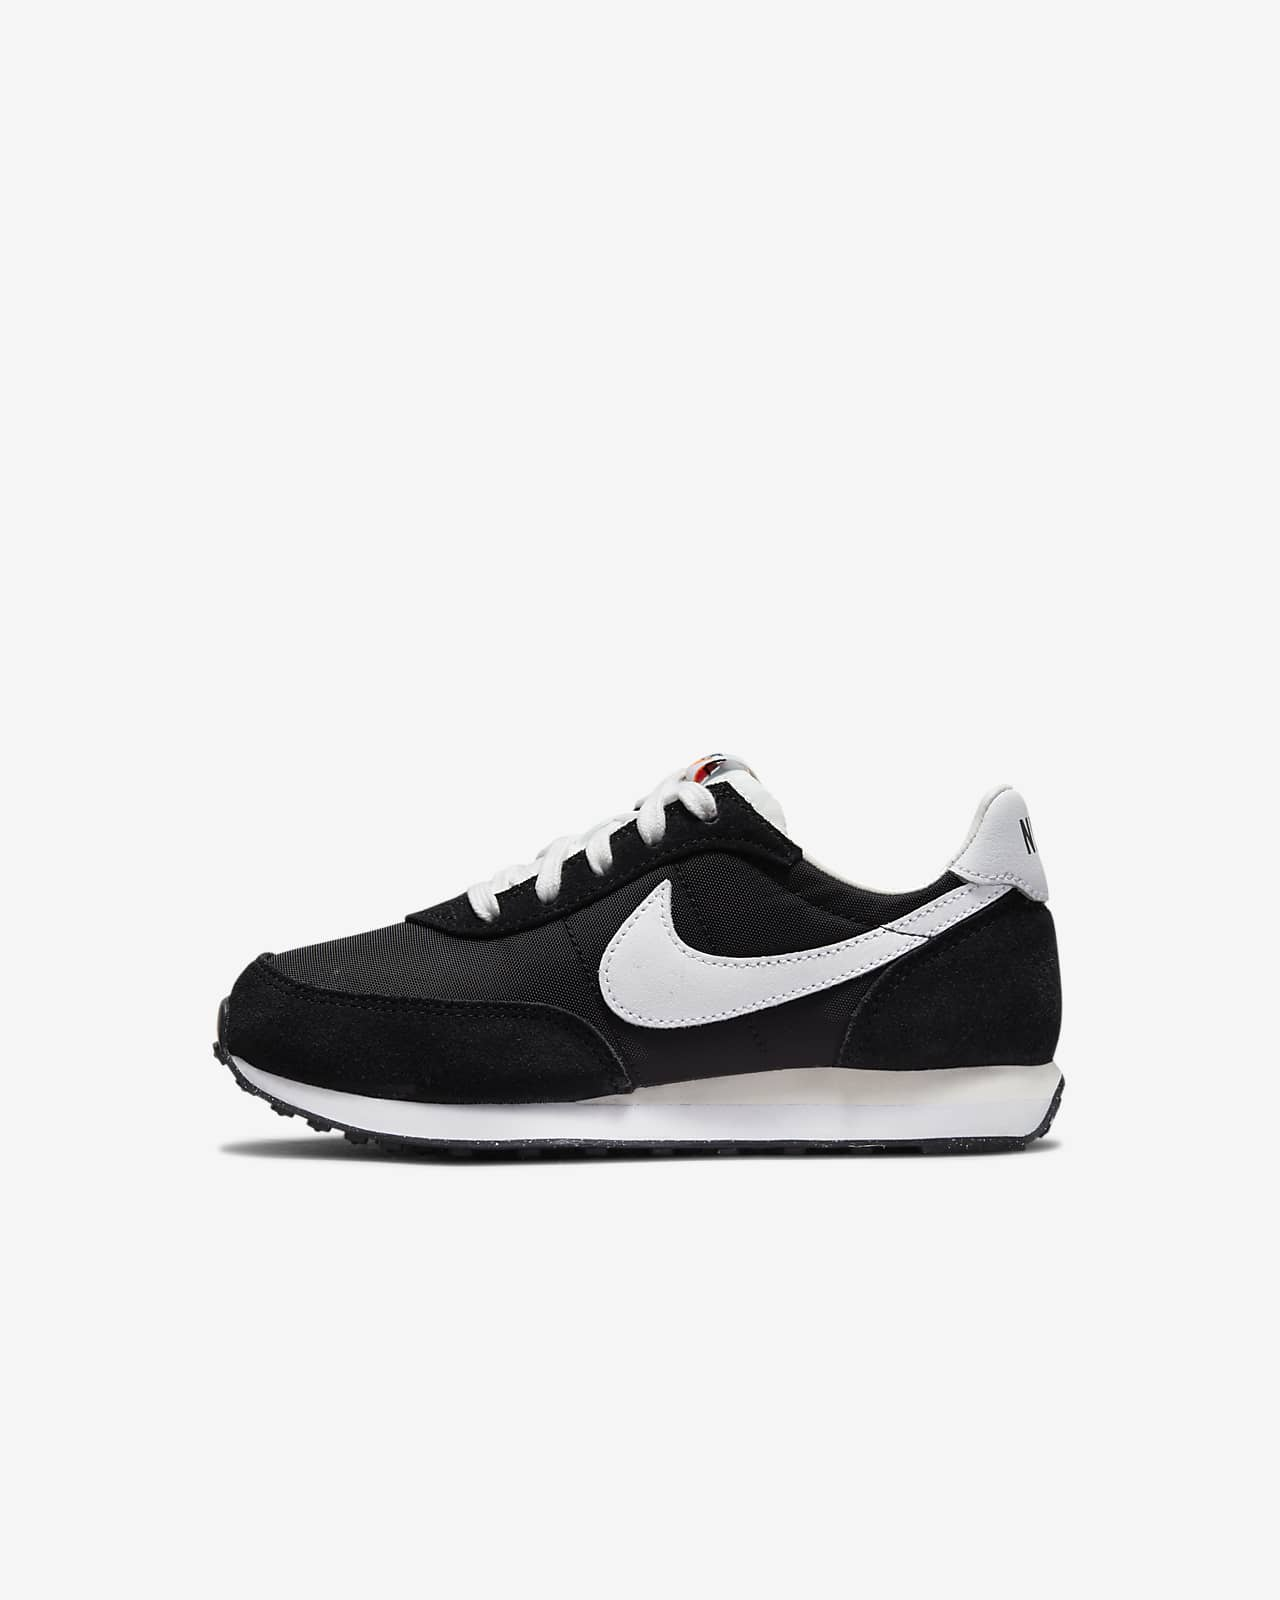 Nike Waffle Trainer 2 Younger Kids' Shoe